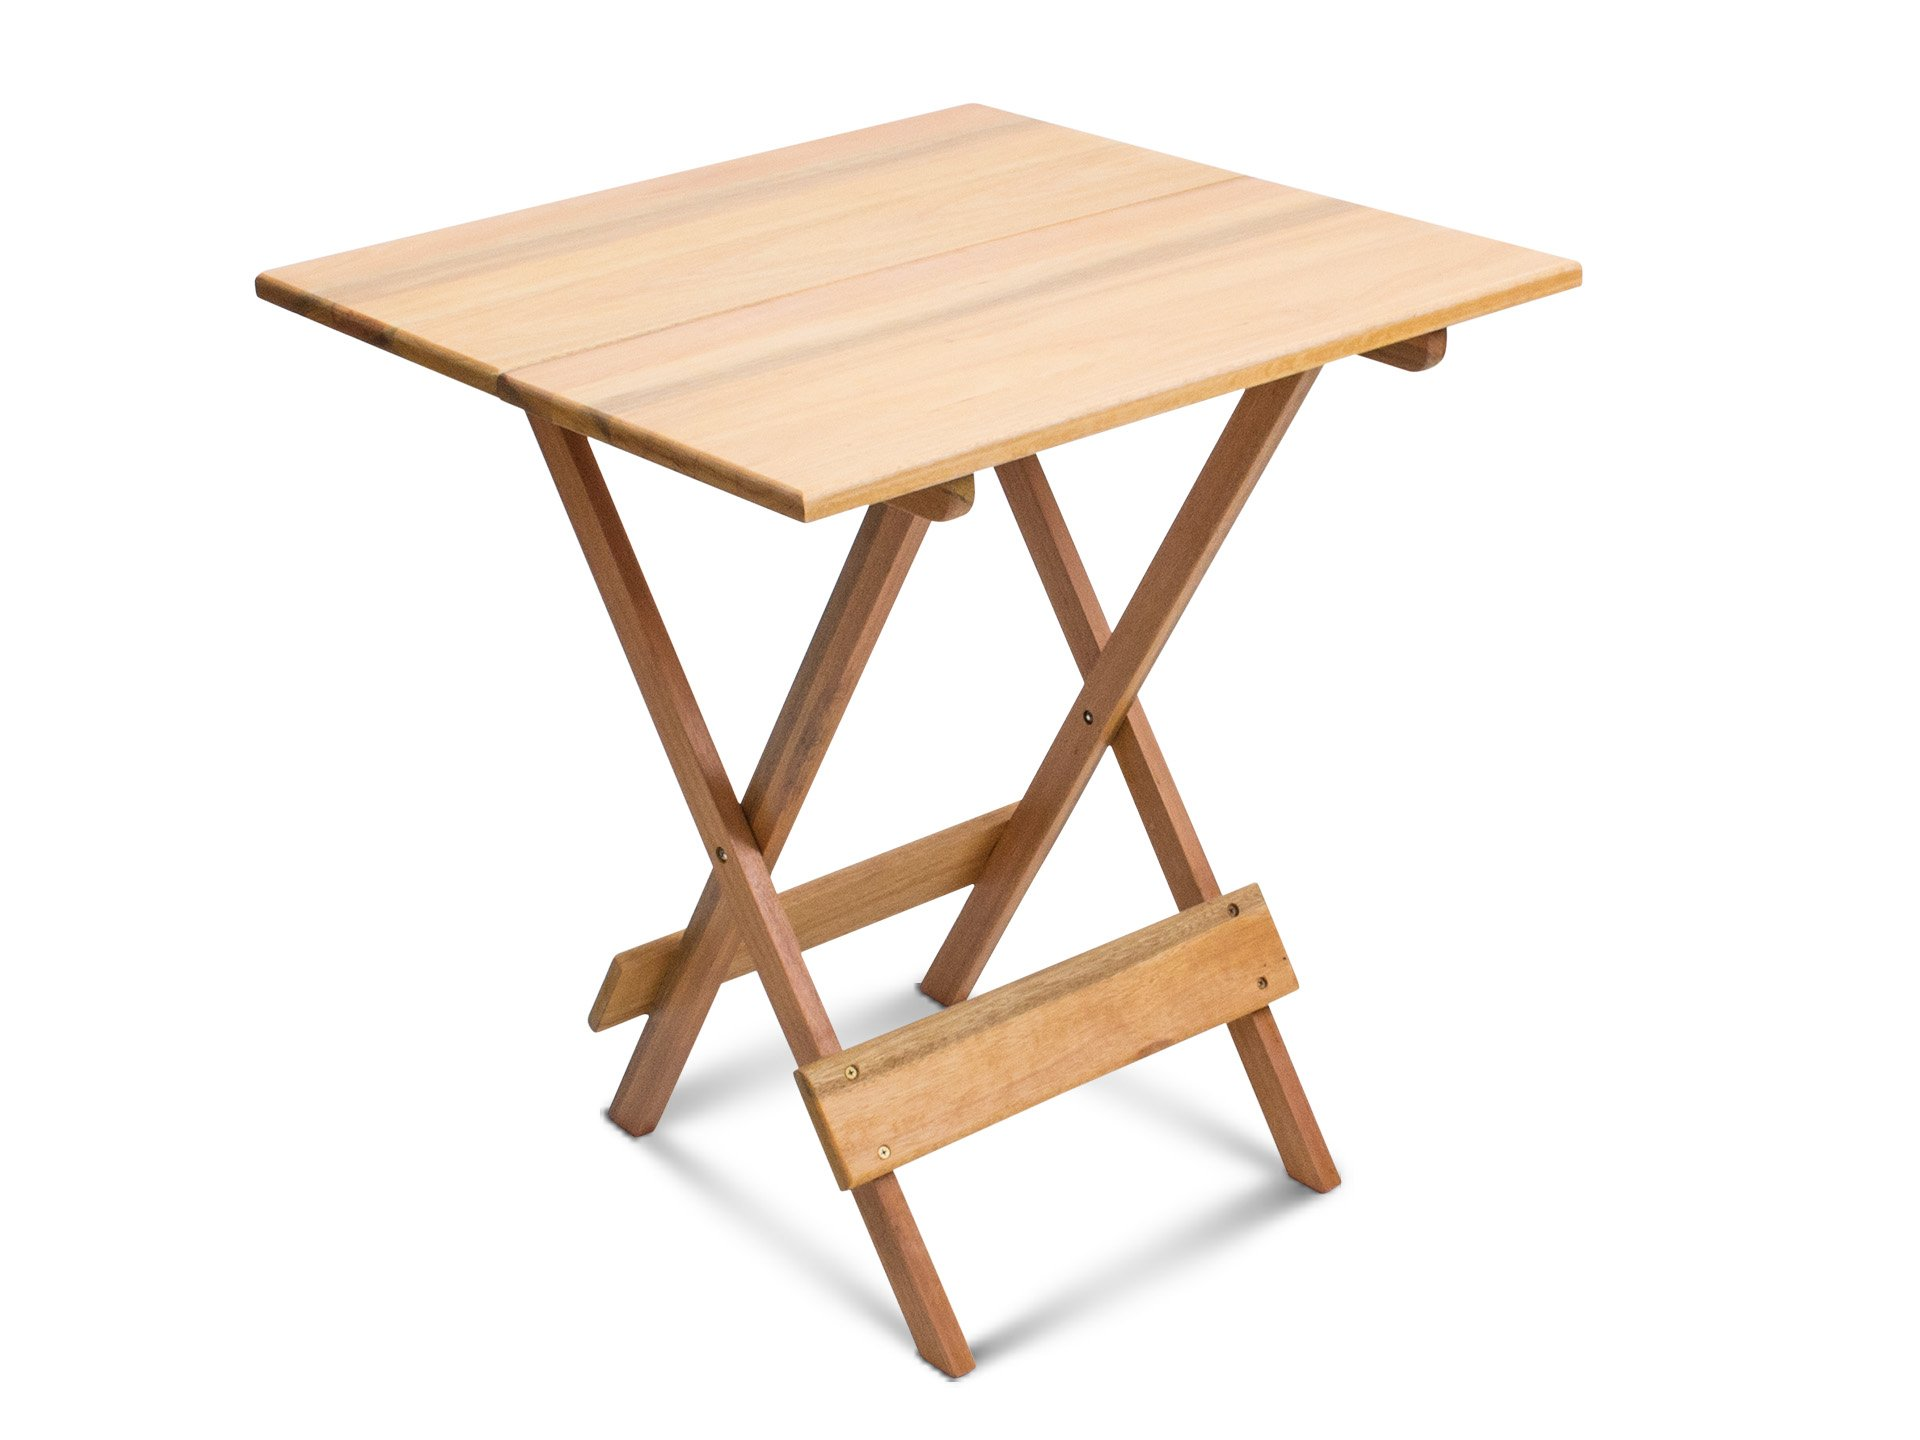 Wood Small Folding Table - Assembled